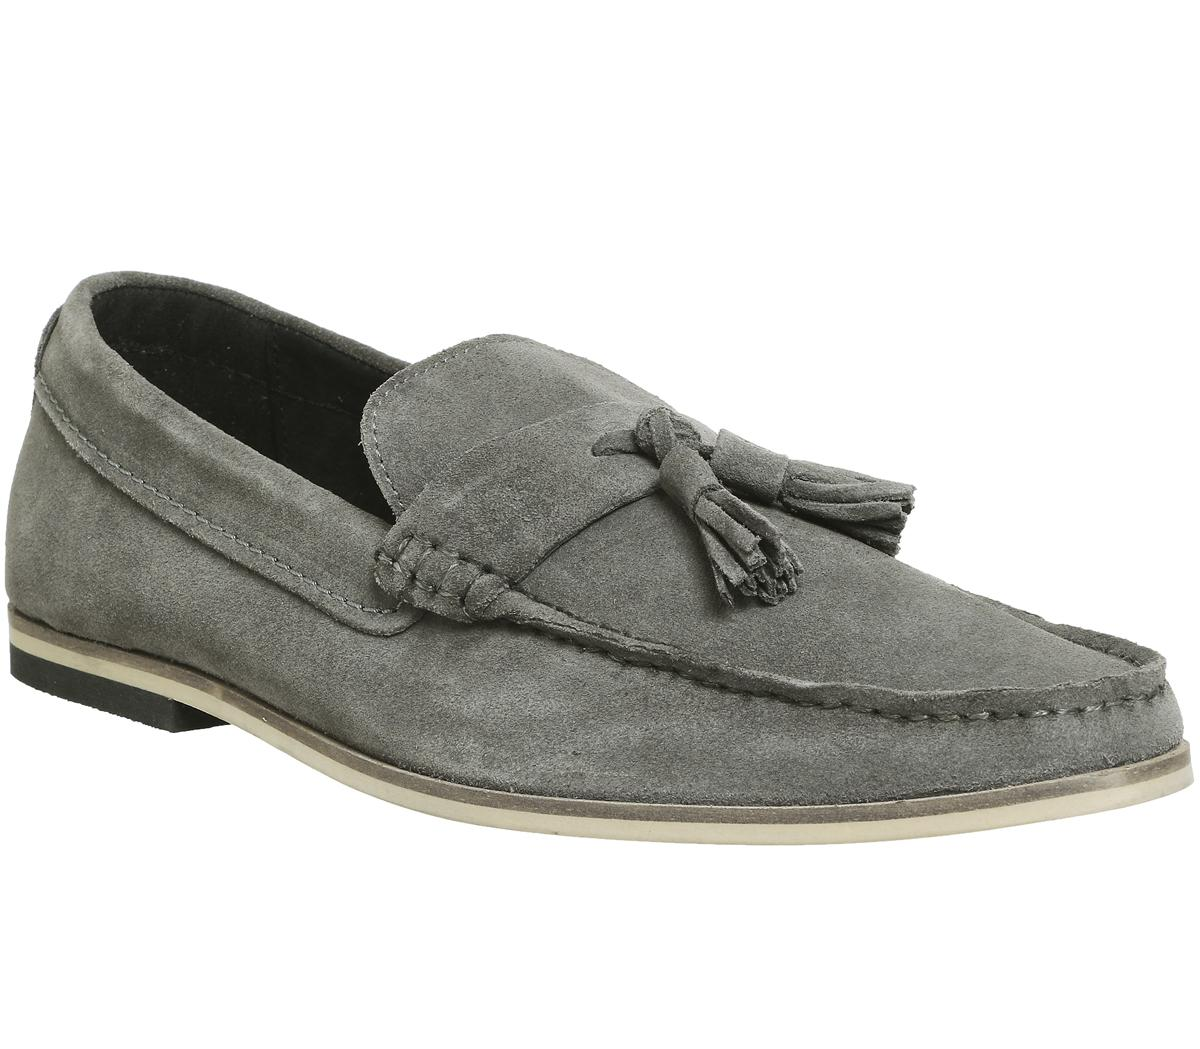 Favour Tassel Loafers